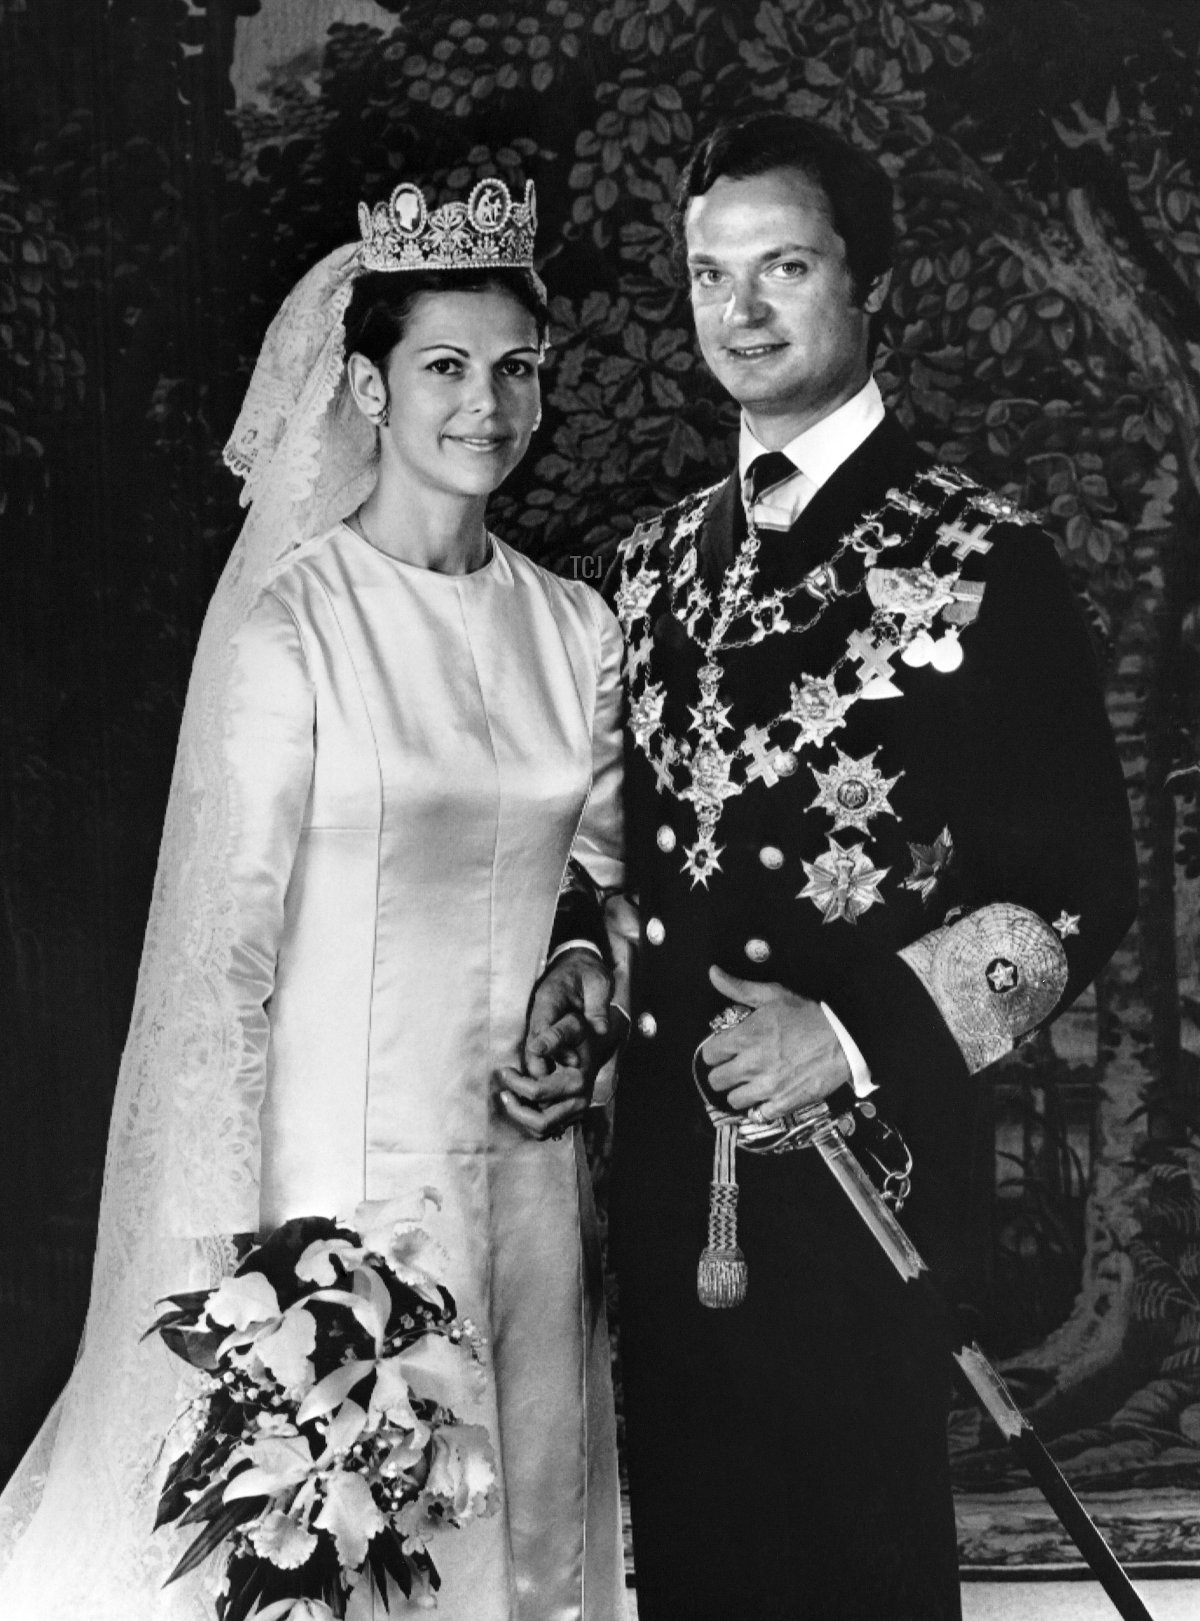 King Carl XVI Gustaf of Sweden and Miss Silvia Sommerlath pose during their wedding in Stockholm on June 19, 1976